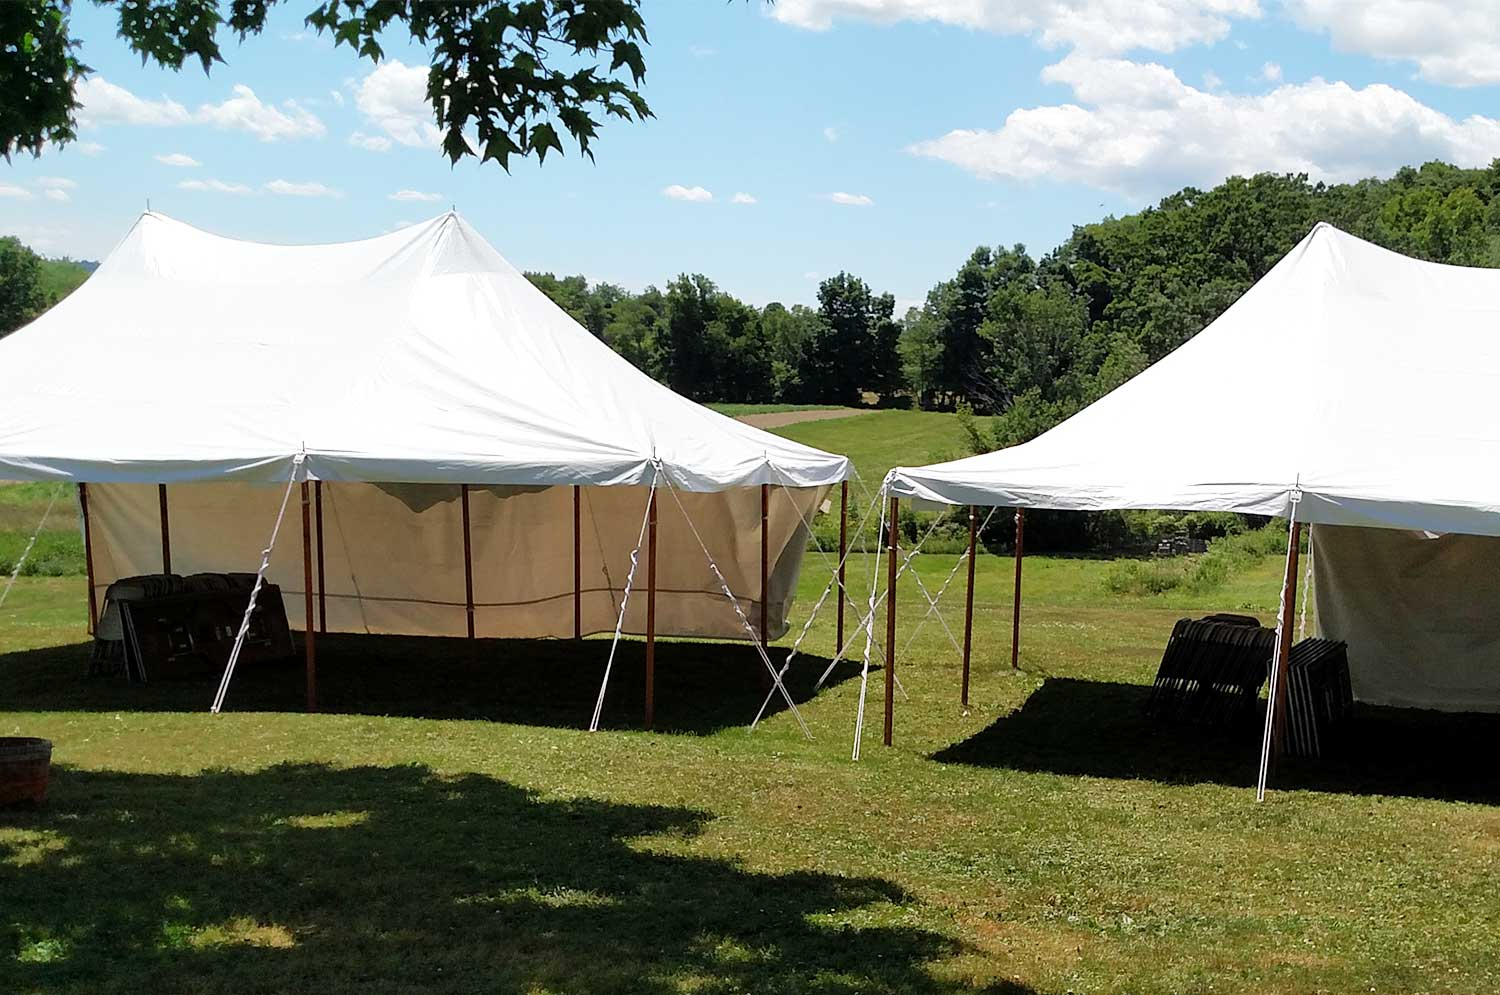 Side by side tents set up for party in Greenwich, NY